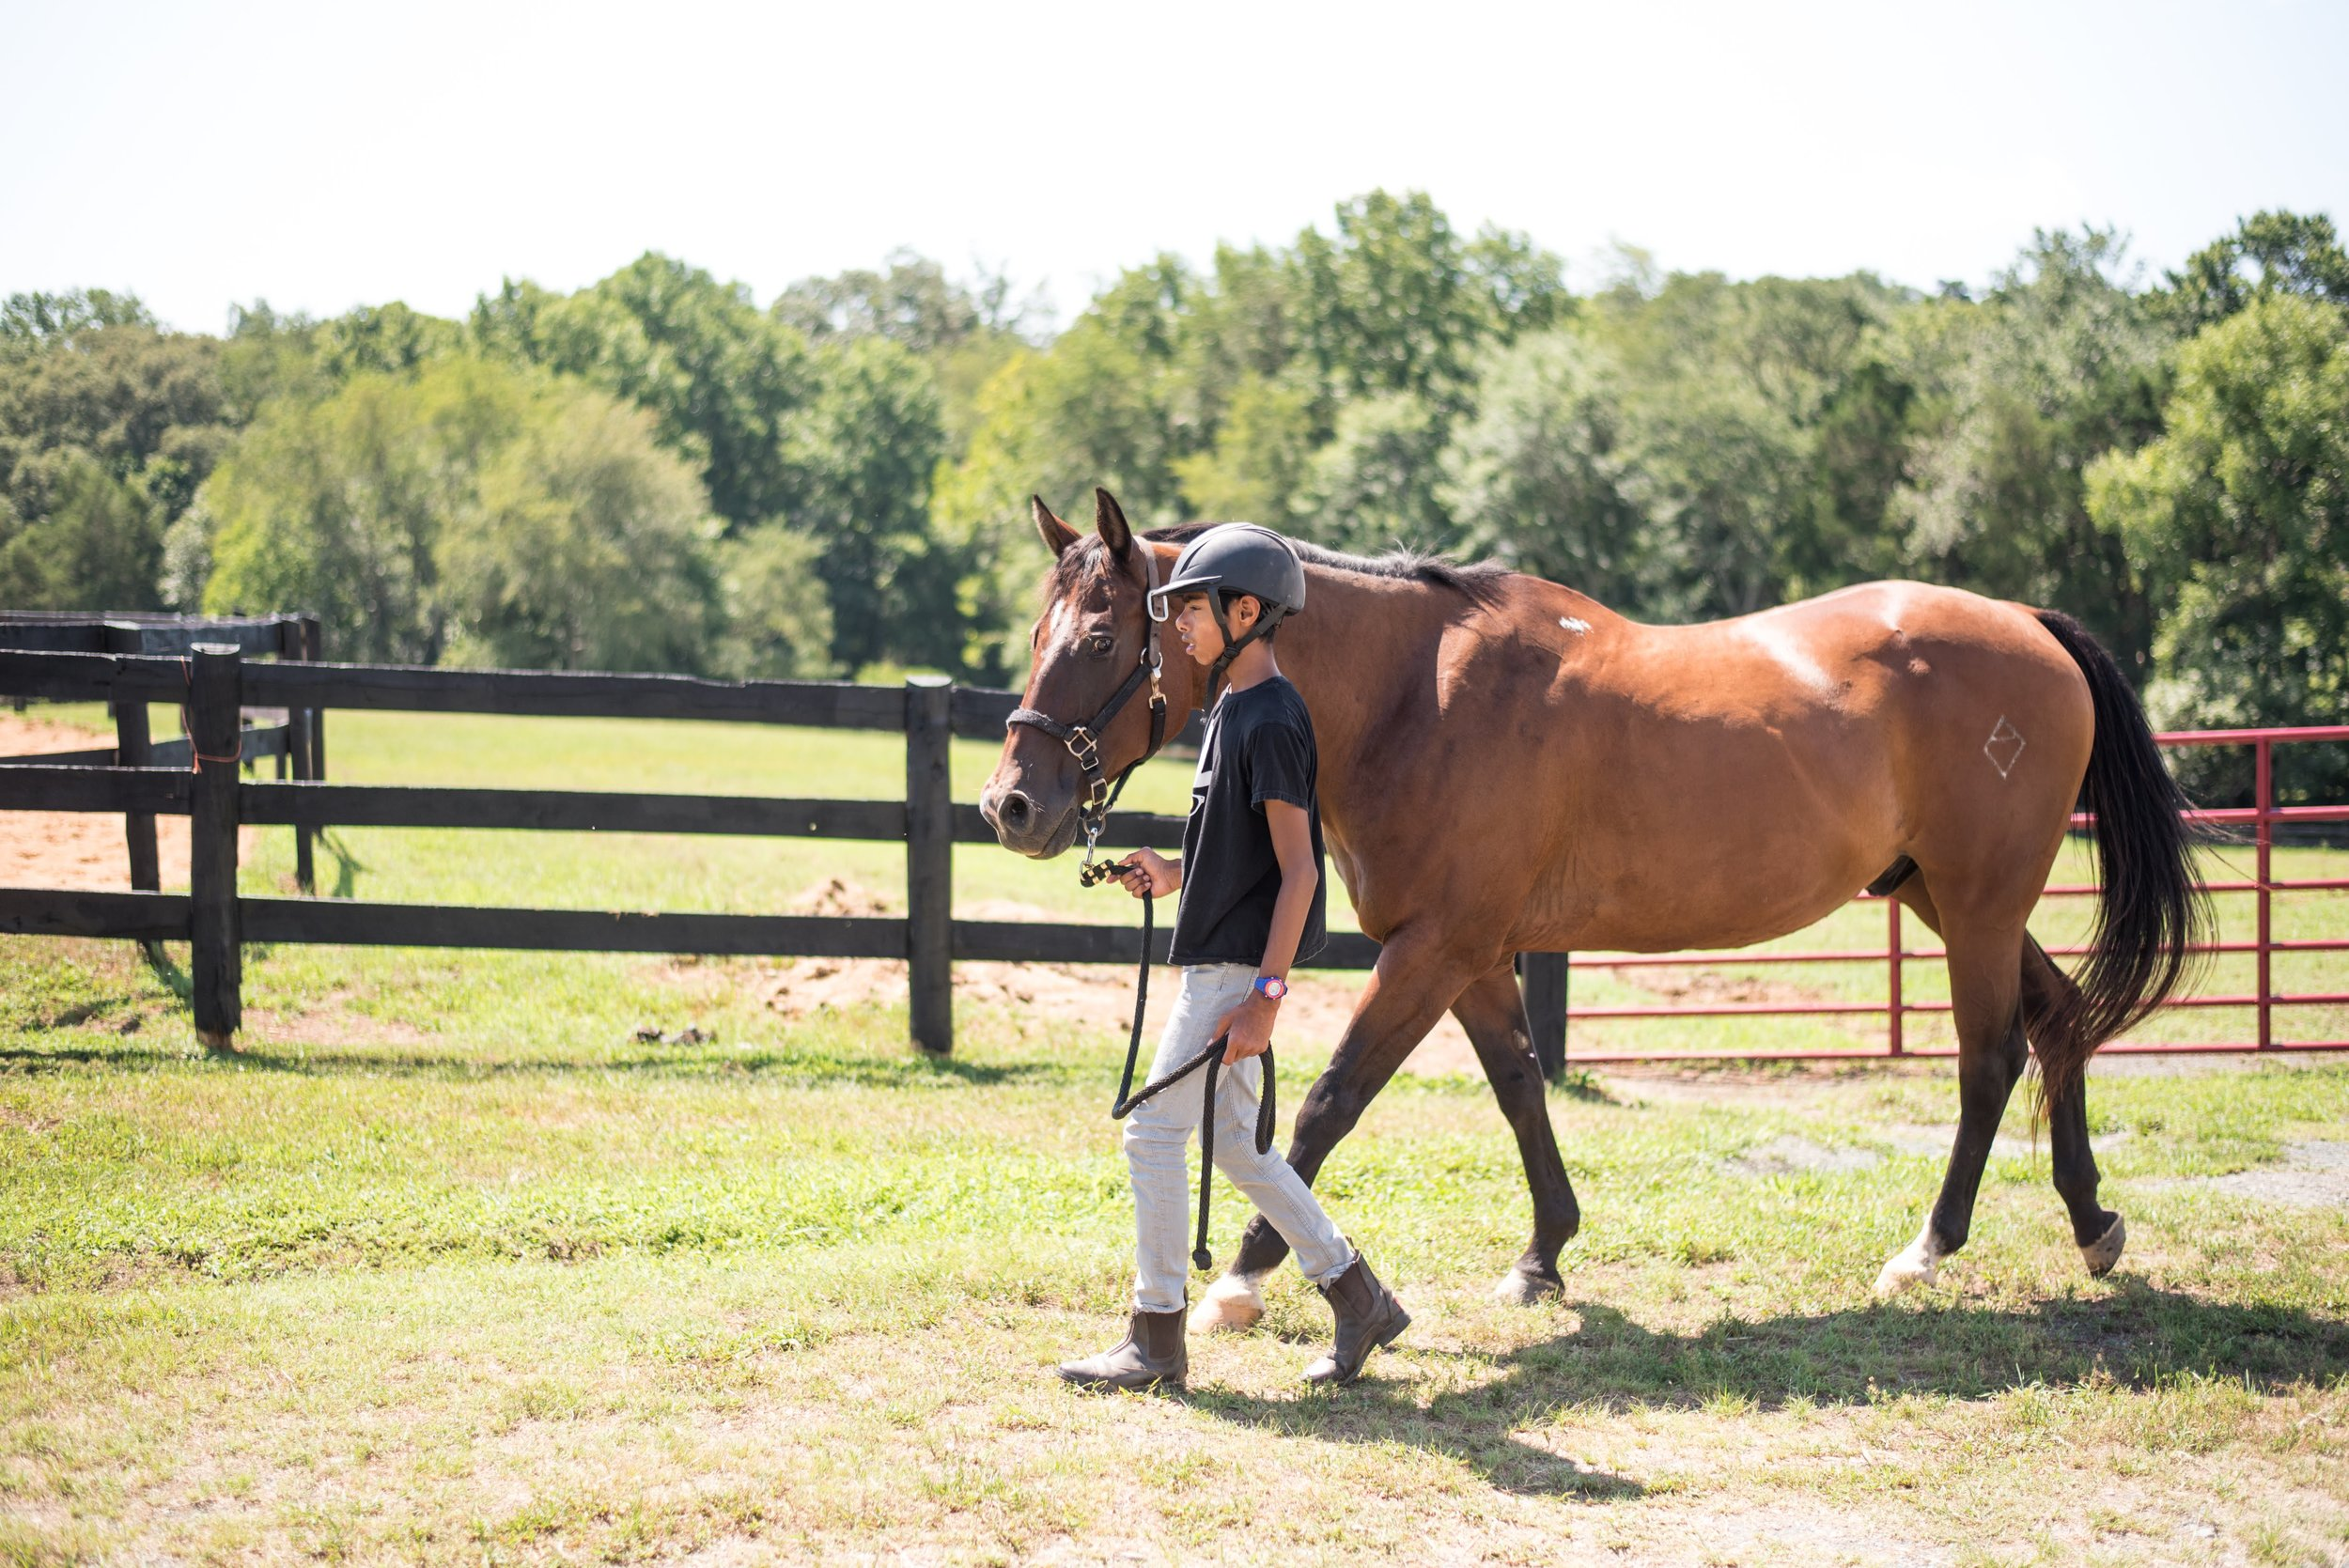 At Oakland School, students have the opportunity to join our equestrian program at any level.